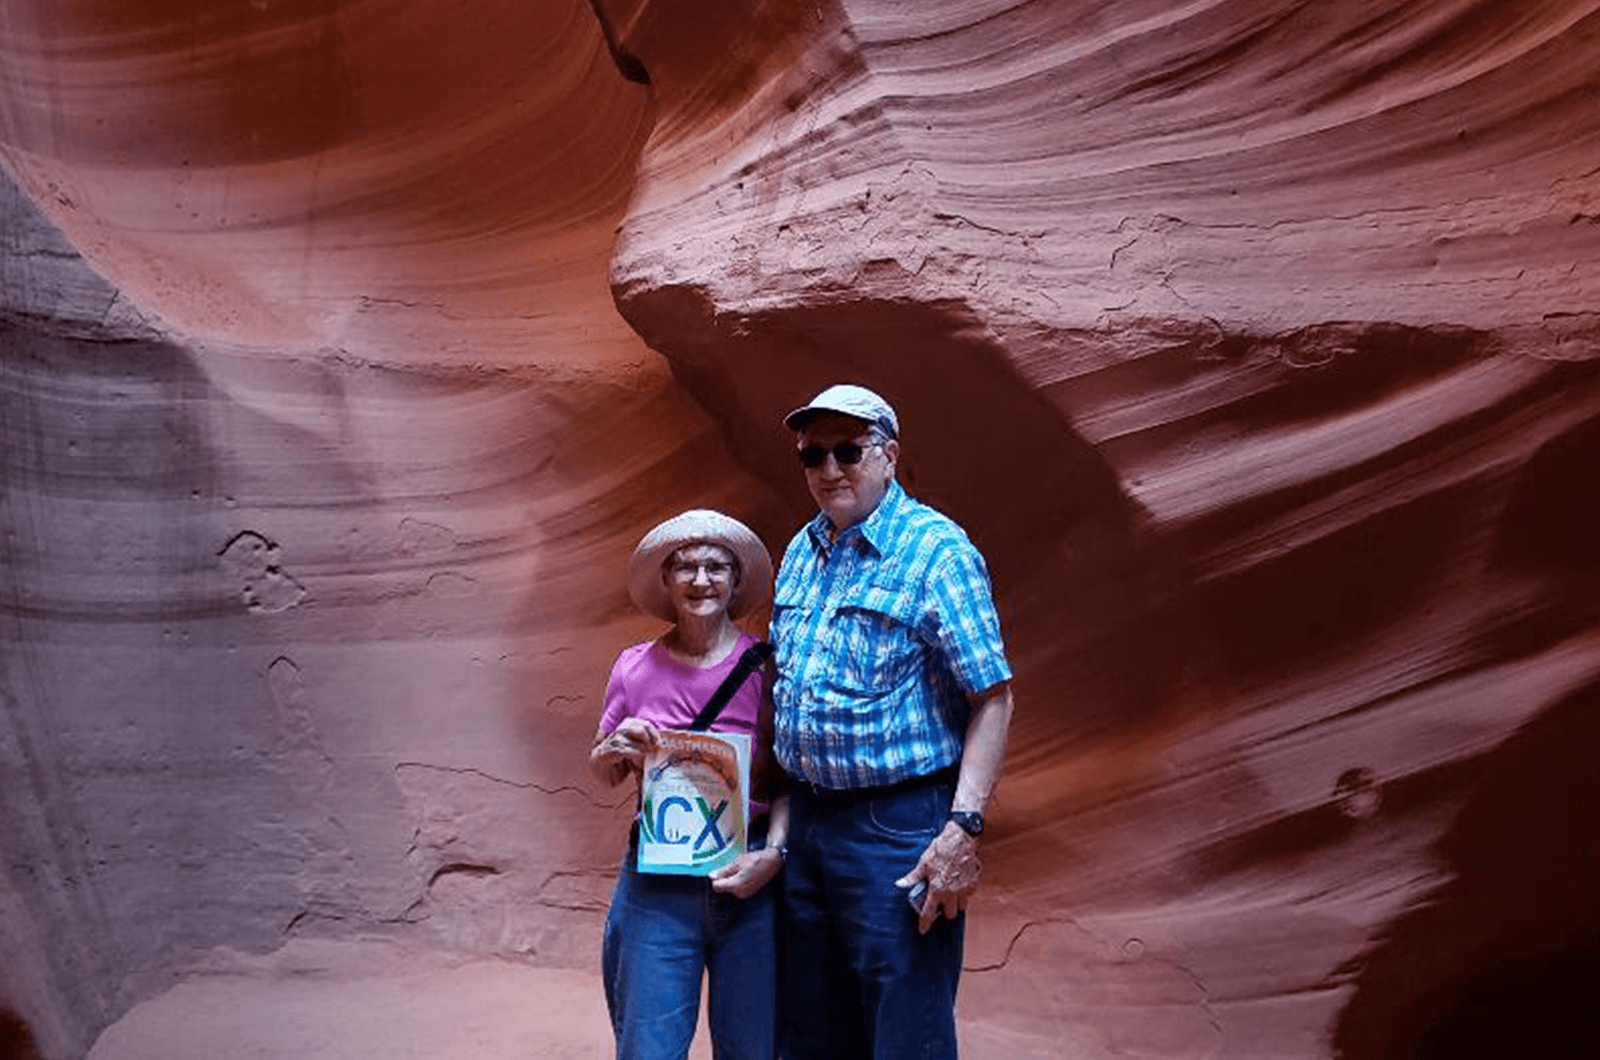 Sandy Kardis, DTM, and Tony Kardis of Creve Couer, Missouri, observe the geological features inside the Antelope Canyon Slot in Page, Arizona.